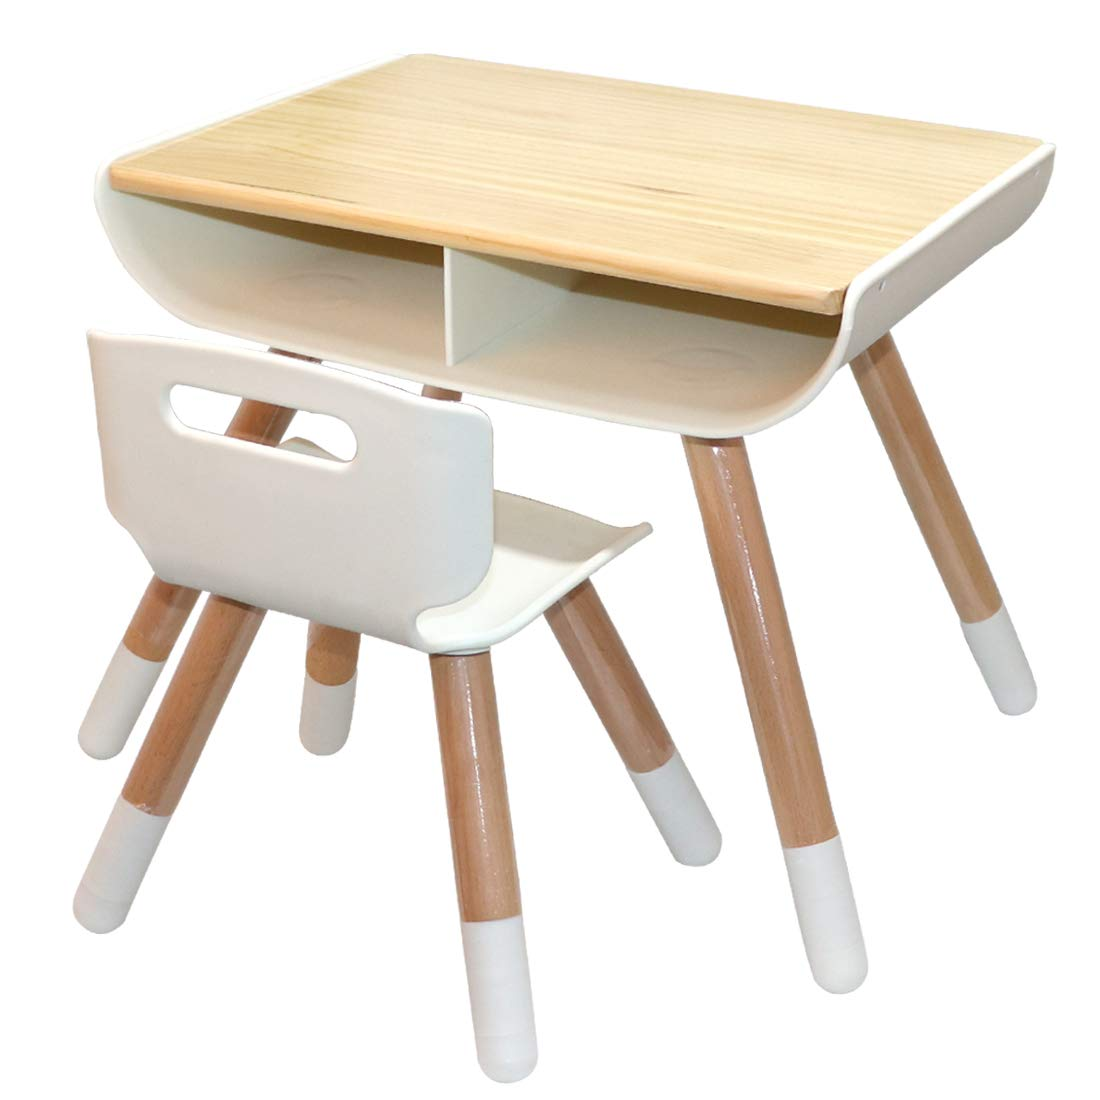 Asunflower Wooden Table and Chair Set for Toddlers and Preschooler - with Storage and Adjustable Legs as Dining Table